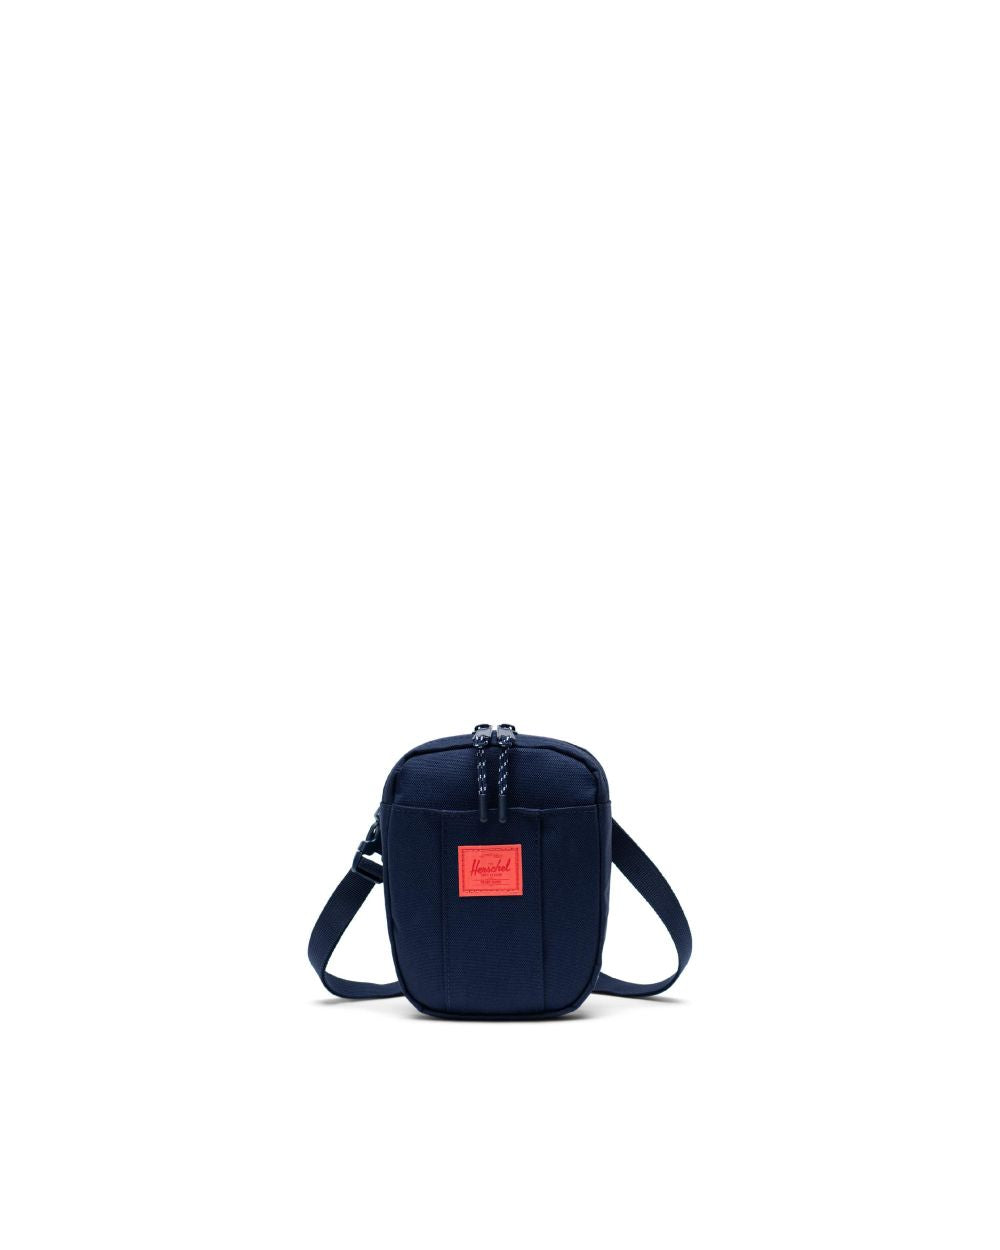 Herschel Supply Co -  Cruz Crossbody, Peacoat/Hot Coral